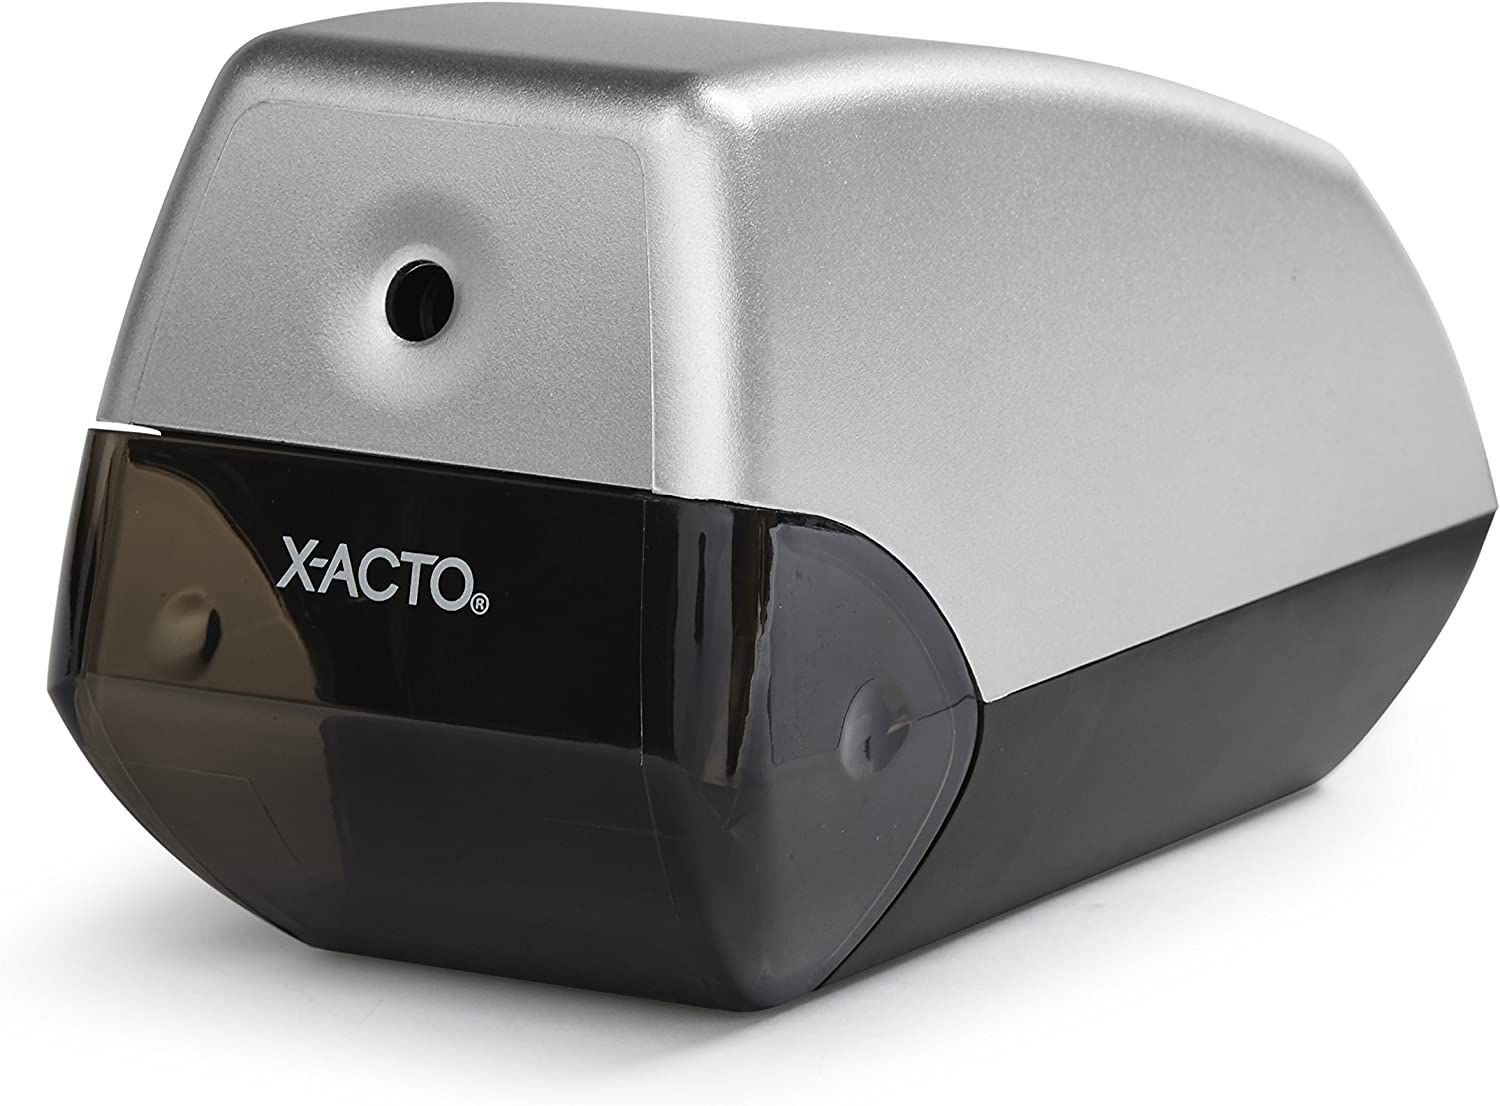 X-ACTO Electric Sharpener, Two-Tone Silver/Gray (1900)